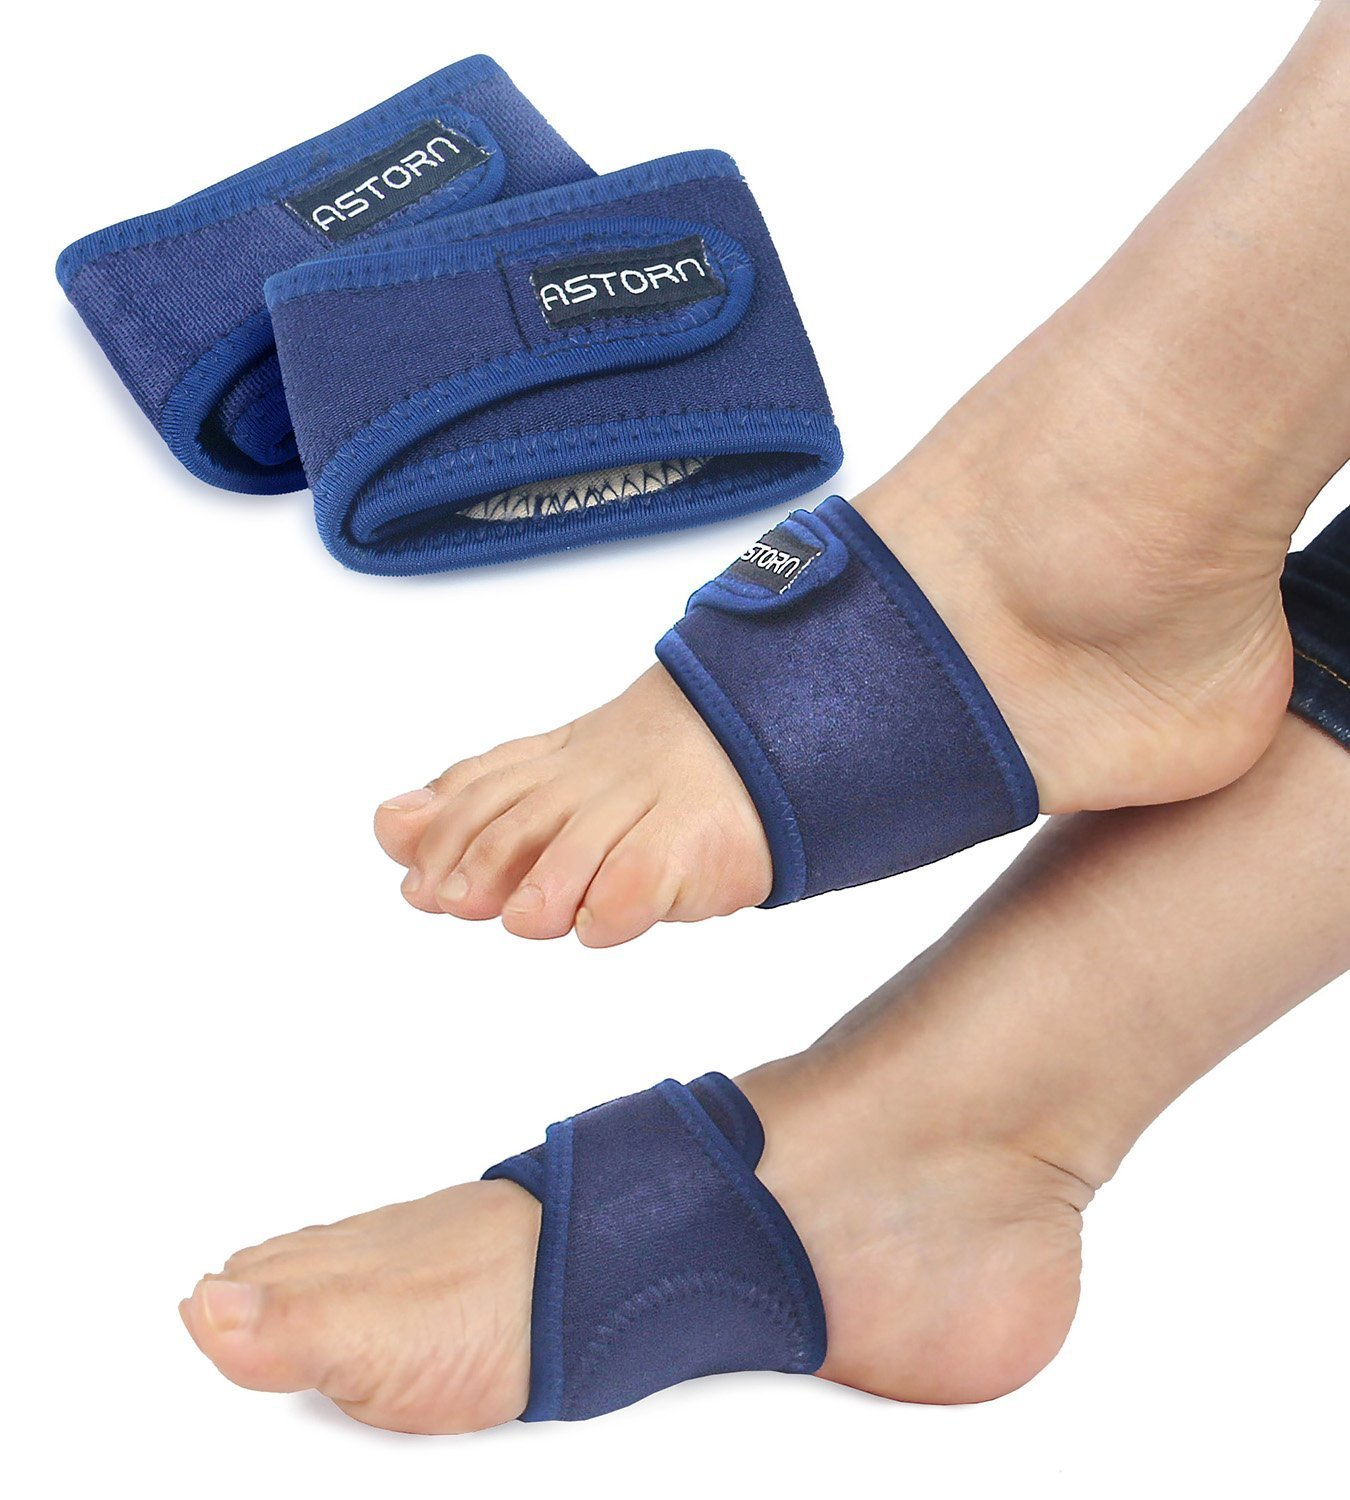 Foot Pain Relief Arch Support Brace for